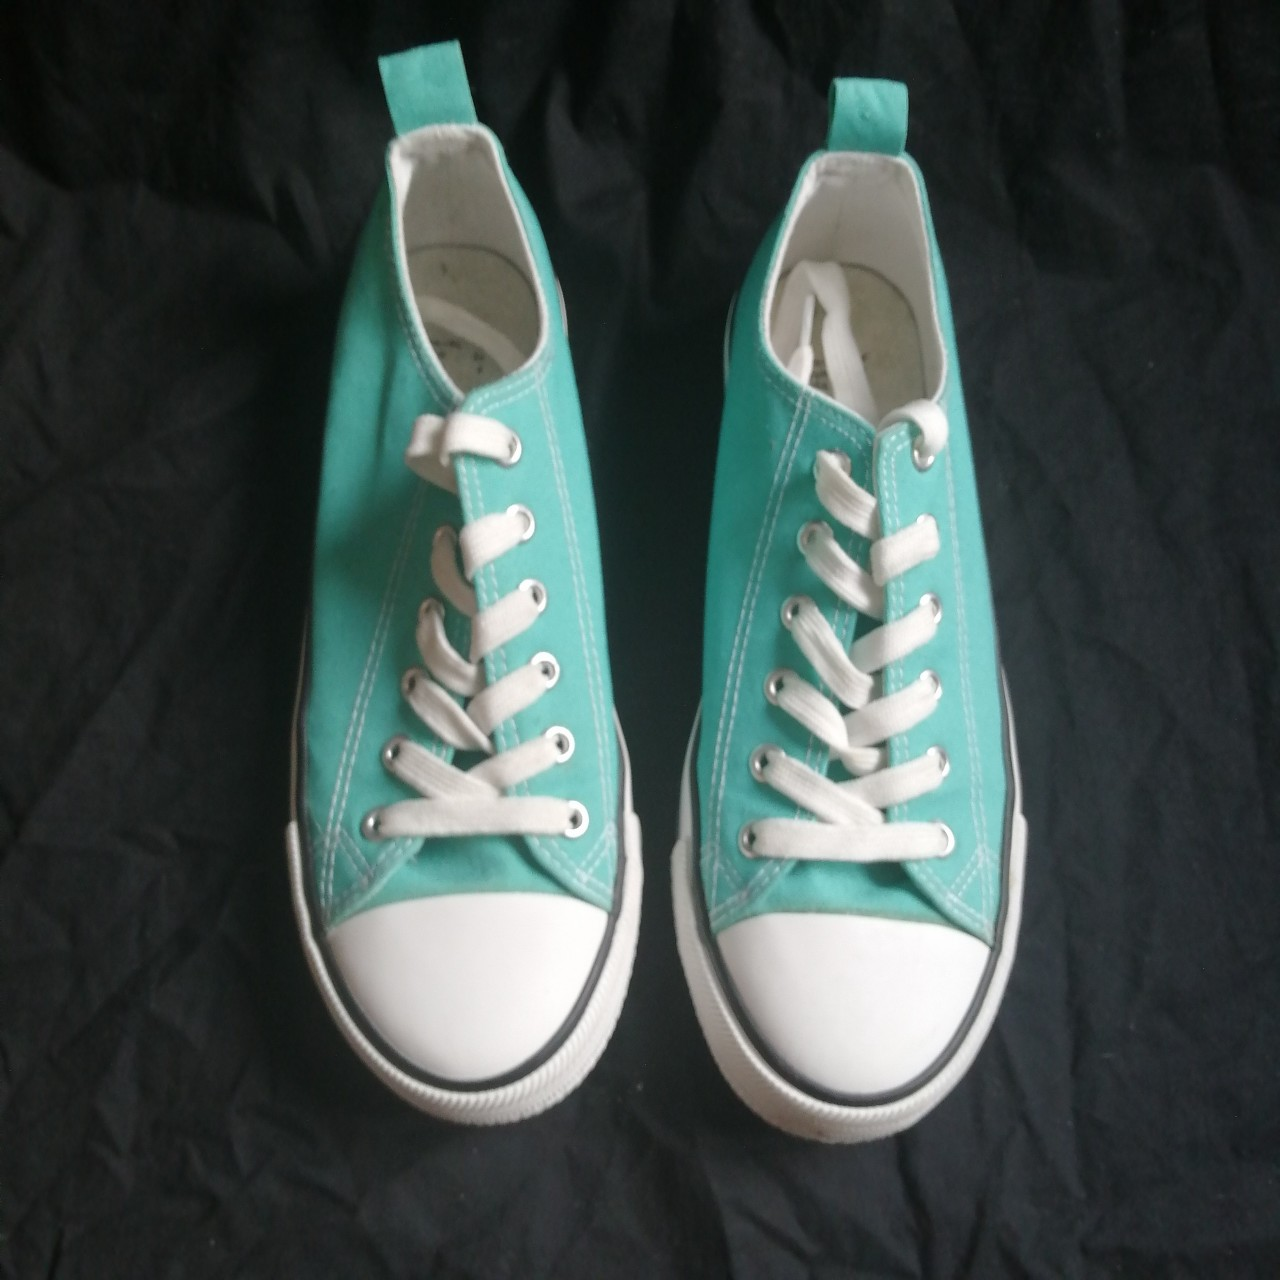 Product Image 1 - PRIMARK CONVERSE STYLE SHOES Bought these